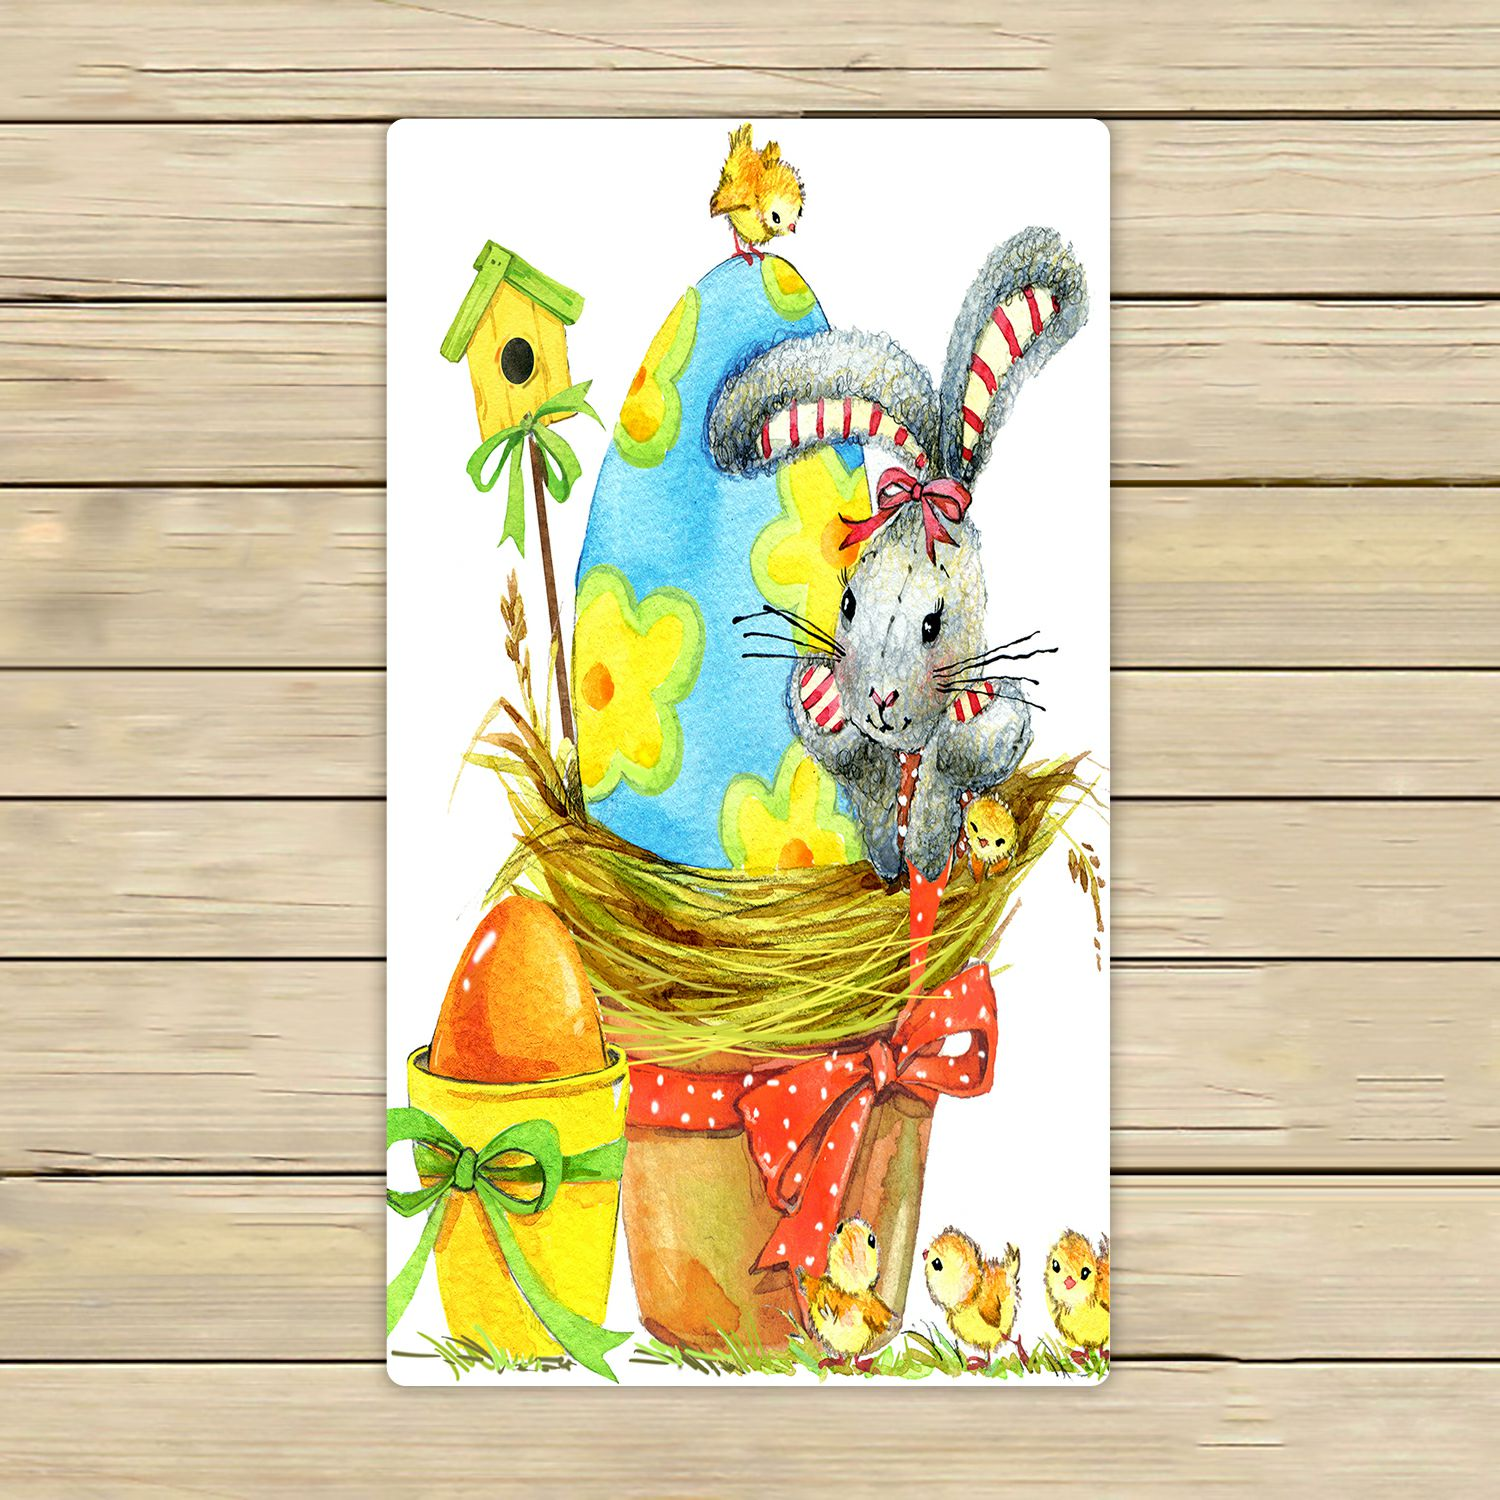 PHFZK Watercolor Towel, Easter Bunny Egg And Spring Chicken Hand Towel Bath  Bathroom Shower Towels Beach Towel 16x28 Inches   Walmart.com Images